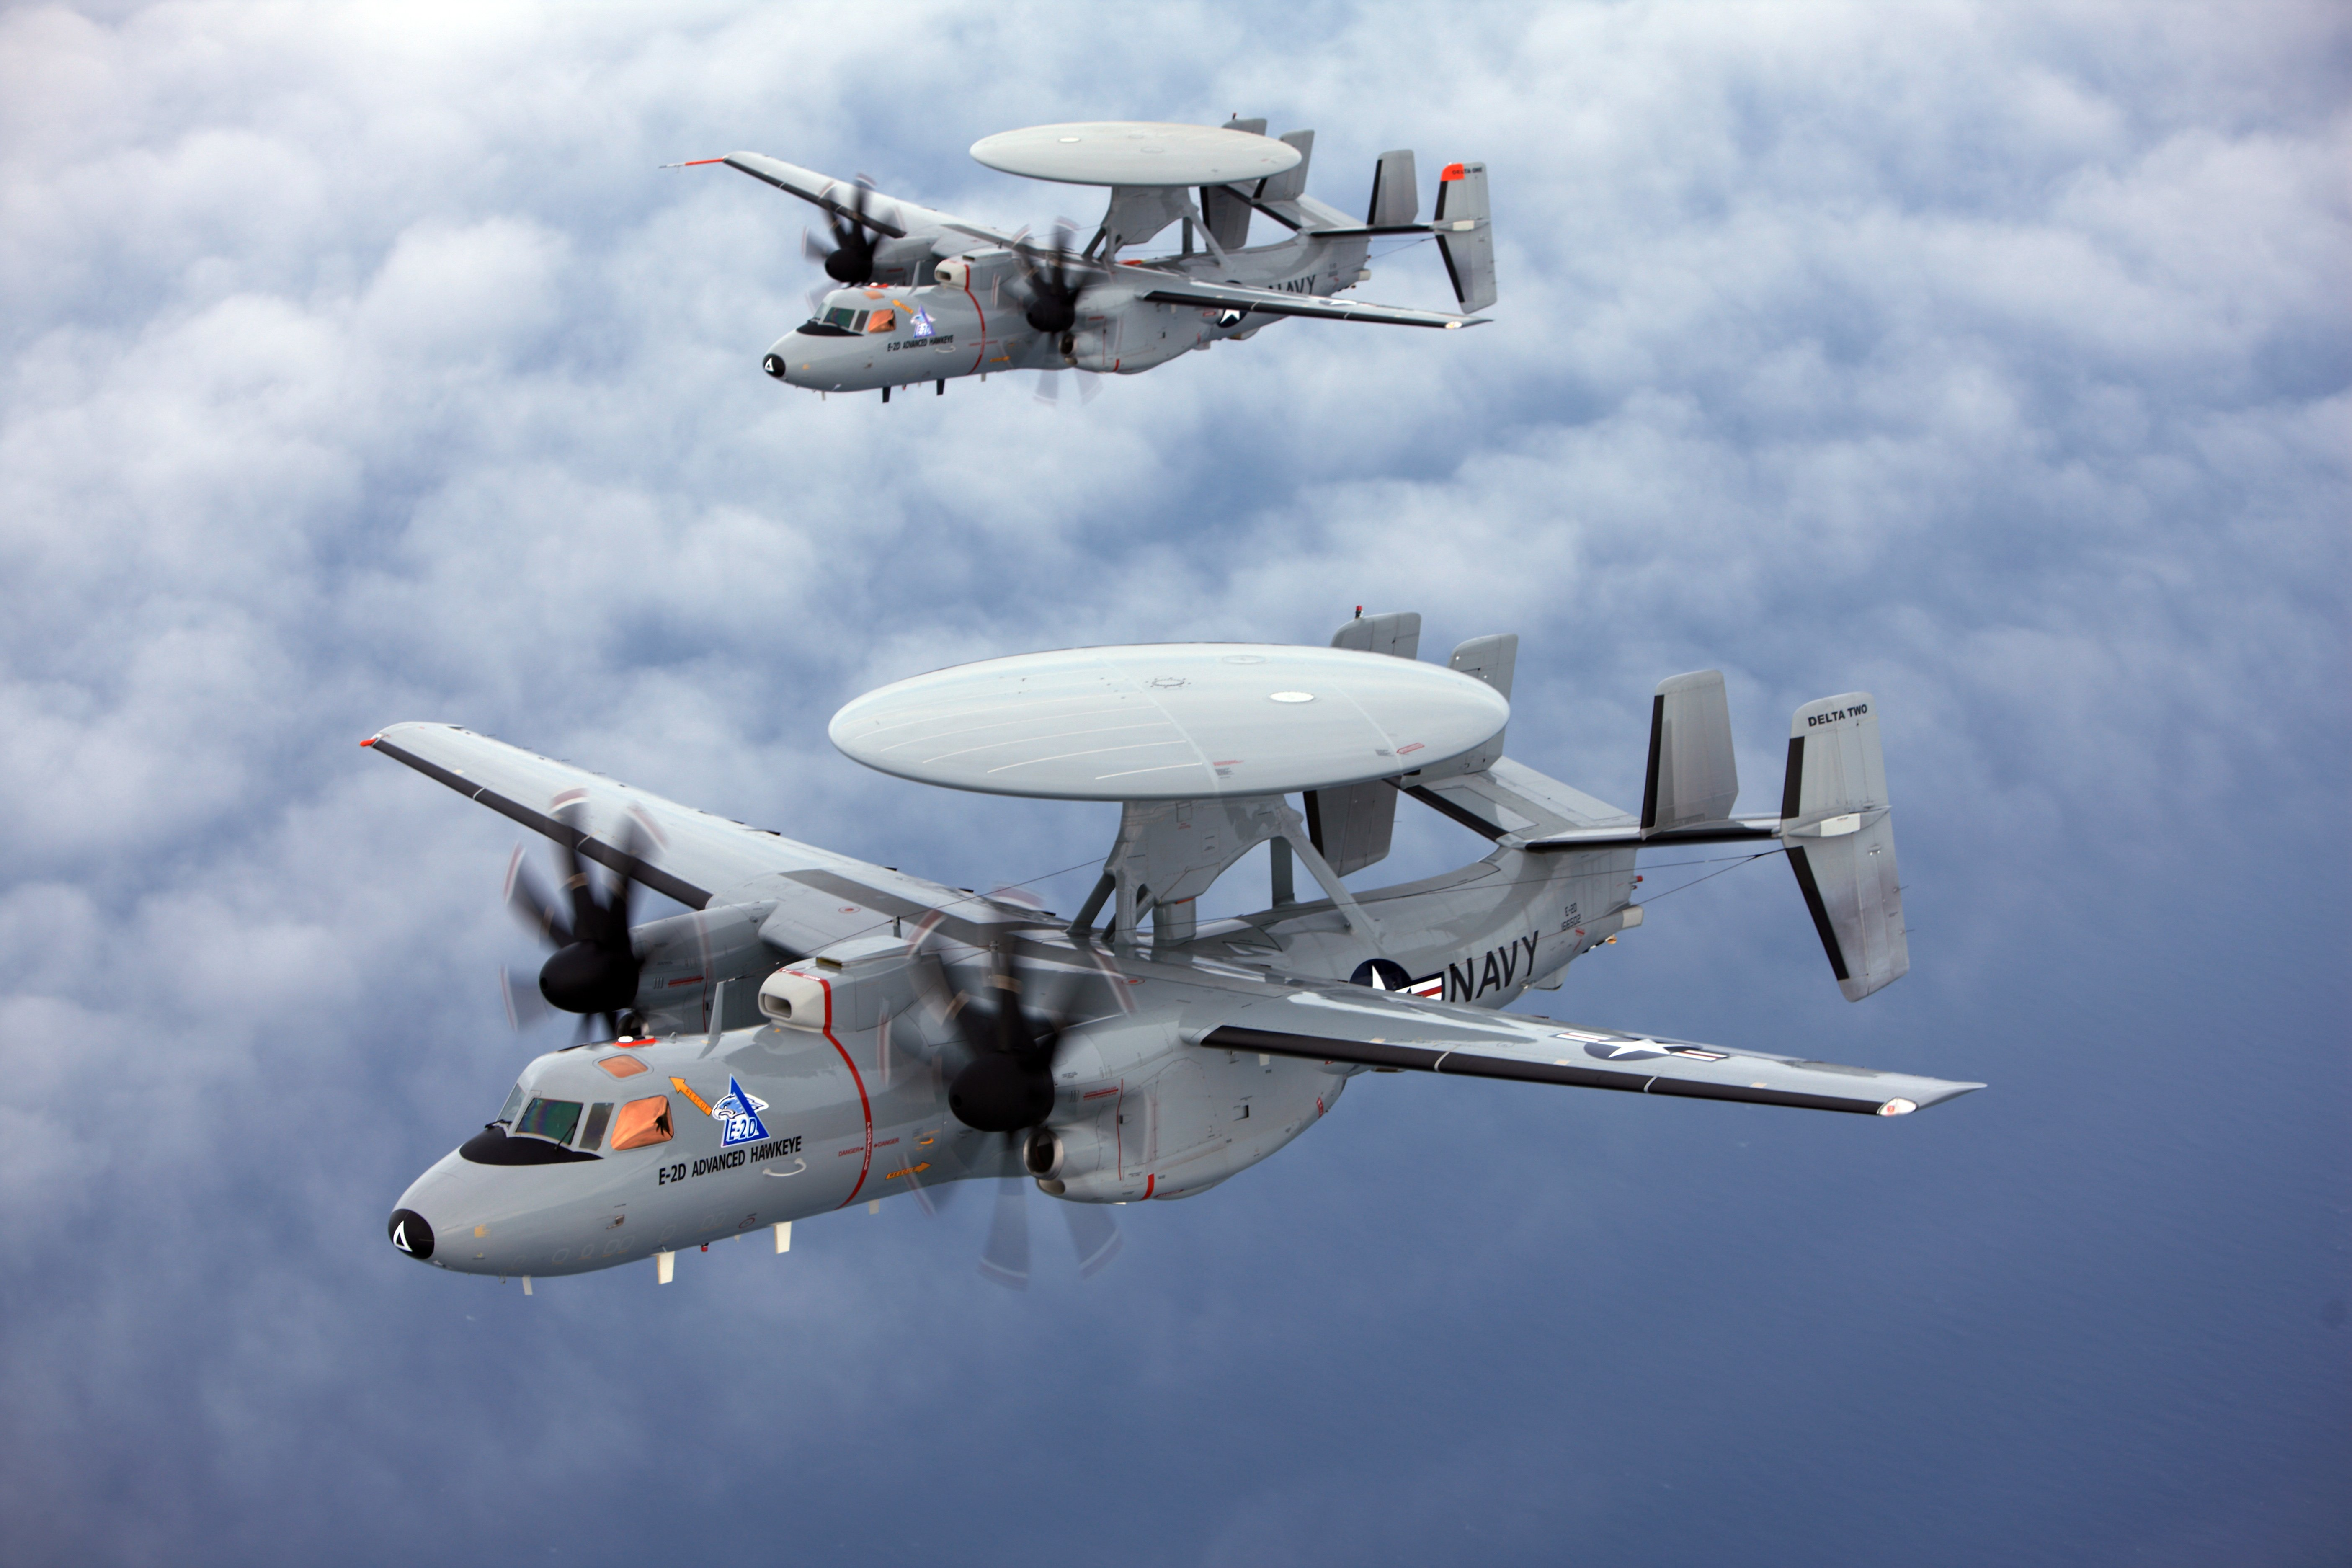 E-2D Advanced Hawkeye aircraft conduct a test flight in 2009. US Navy Photo